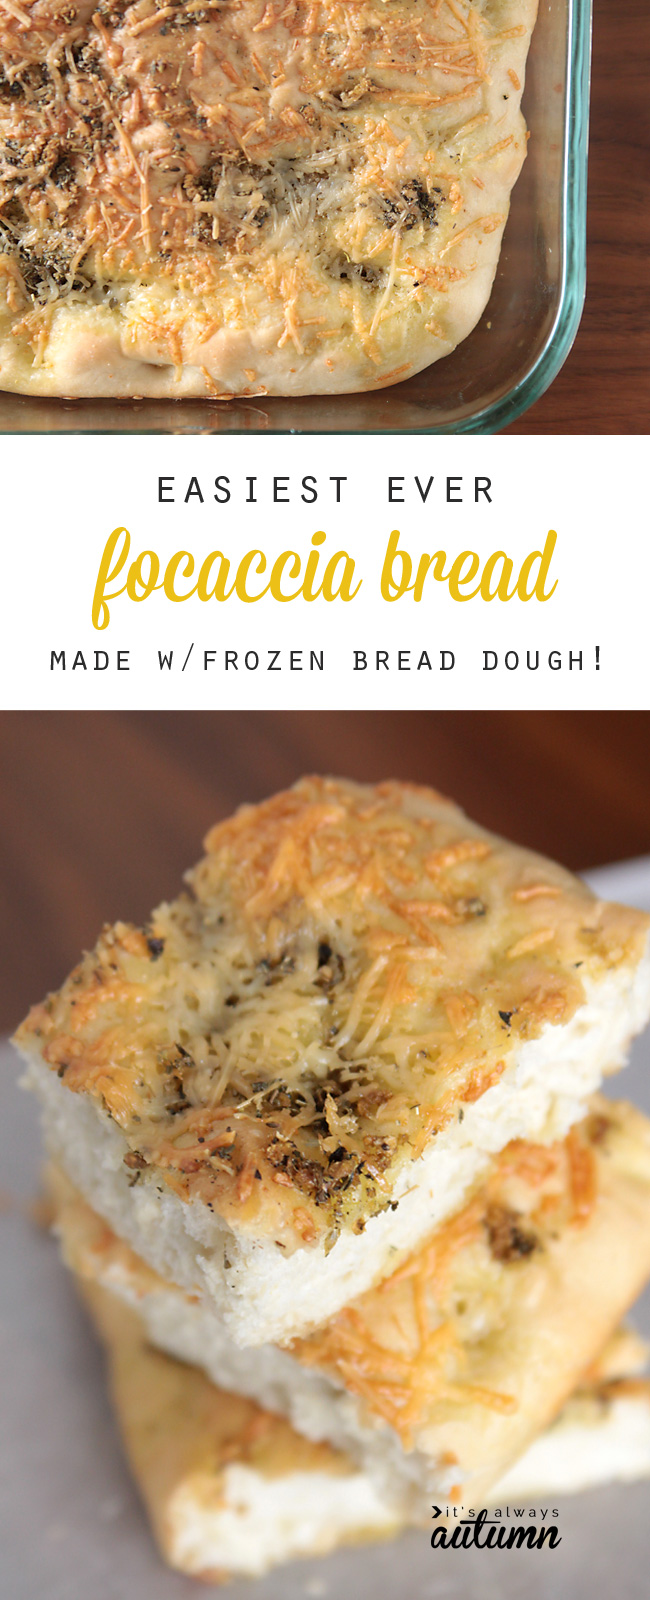 Easiest ever focaccia bread made with frozen bread dough